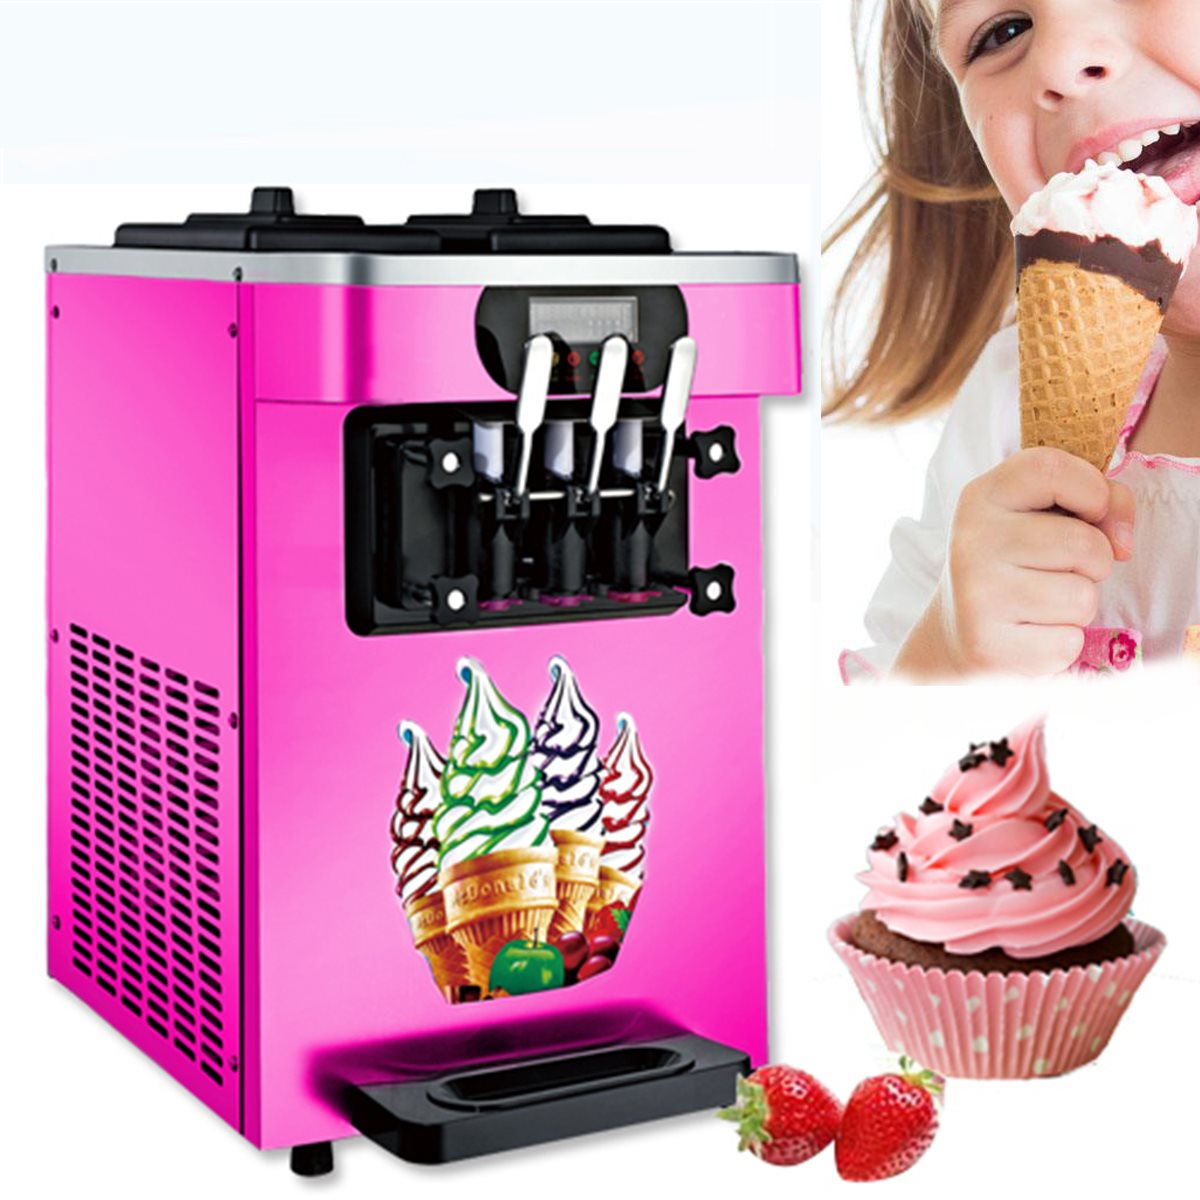 Soft Ice Cream Cones Making Machine Commercial Maker With 3 Flavors Home Shop Diy Ice Cream Maker Kitchen Tools Accessories